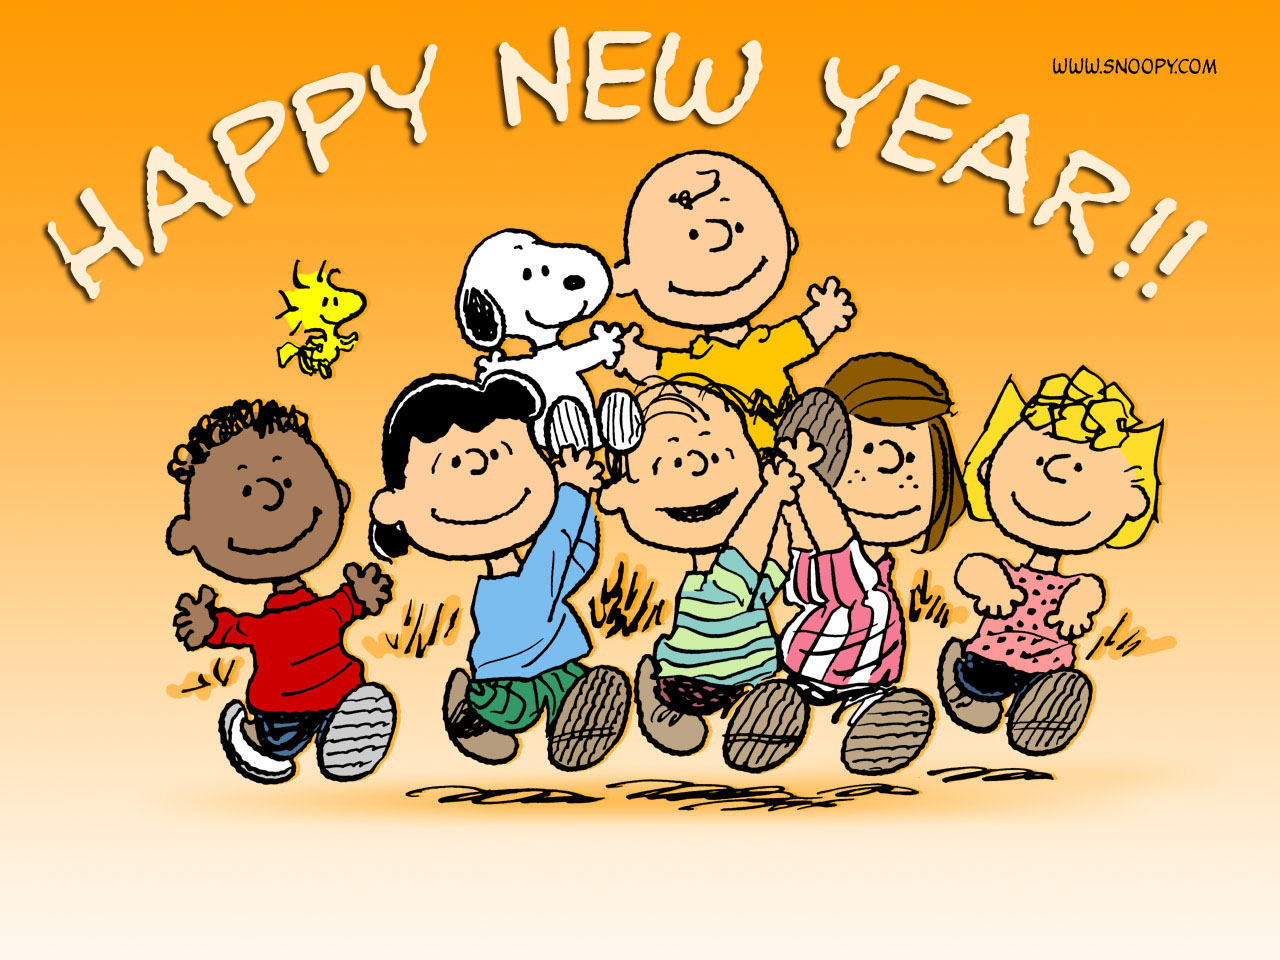 new new year sms 140 character funny new year sms sweet and nice new . 1280 x 960.Greeting For New Year In Hindi